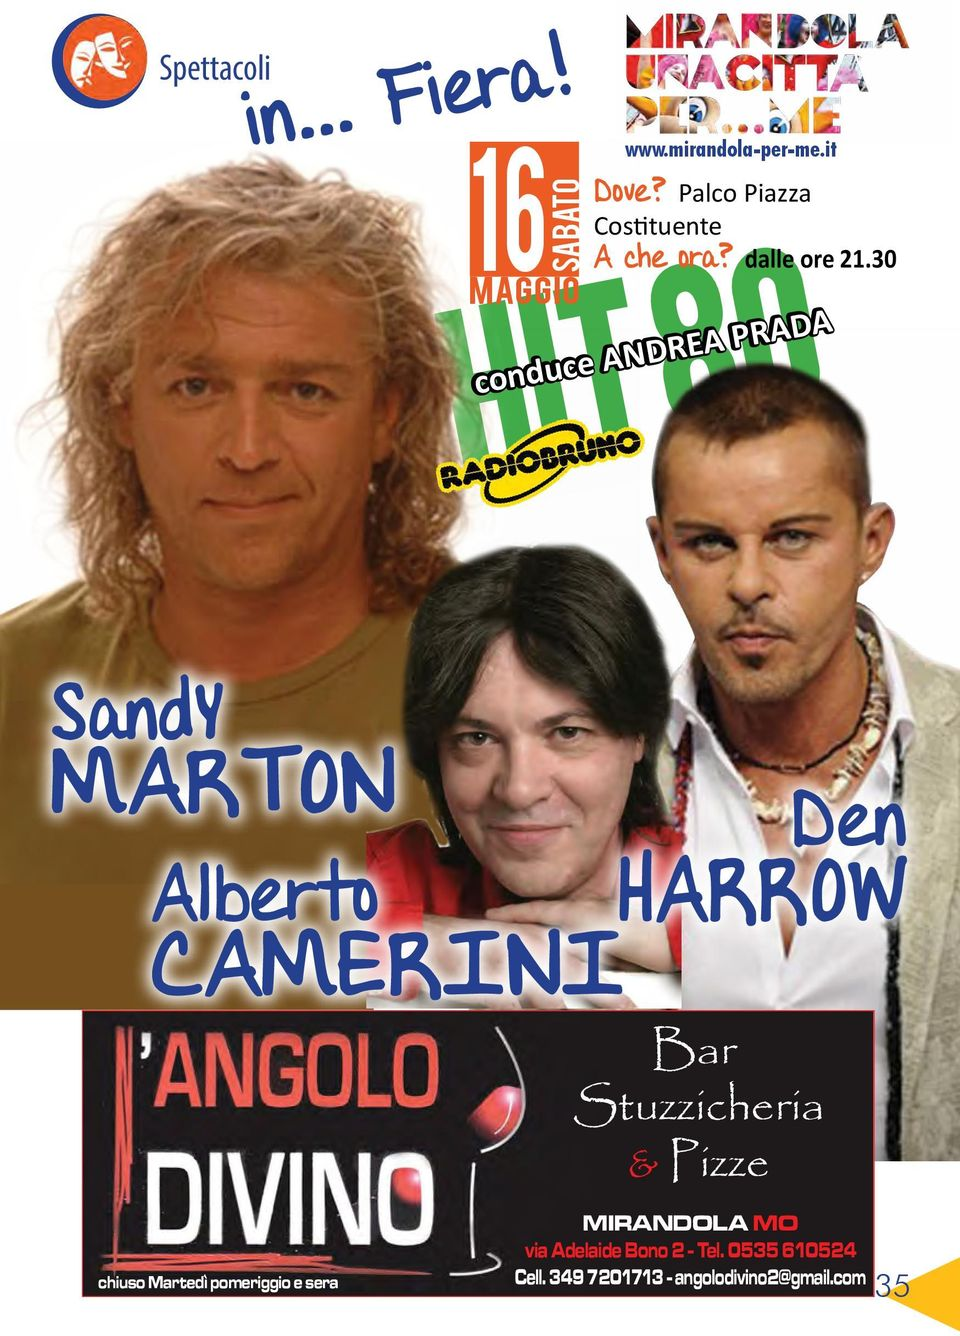 30 HIT 80 conduce ANDREA PRADA SandY MARTON Den Alberto HARROW CAMERINI Bar